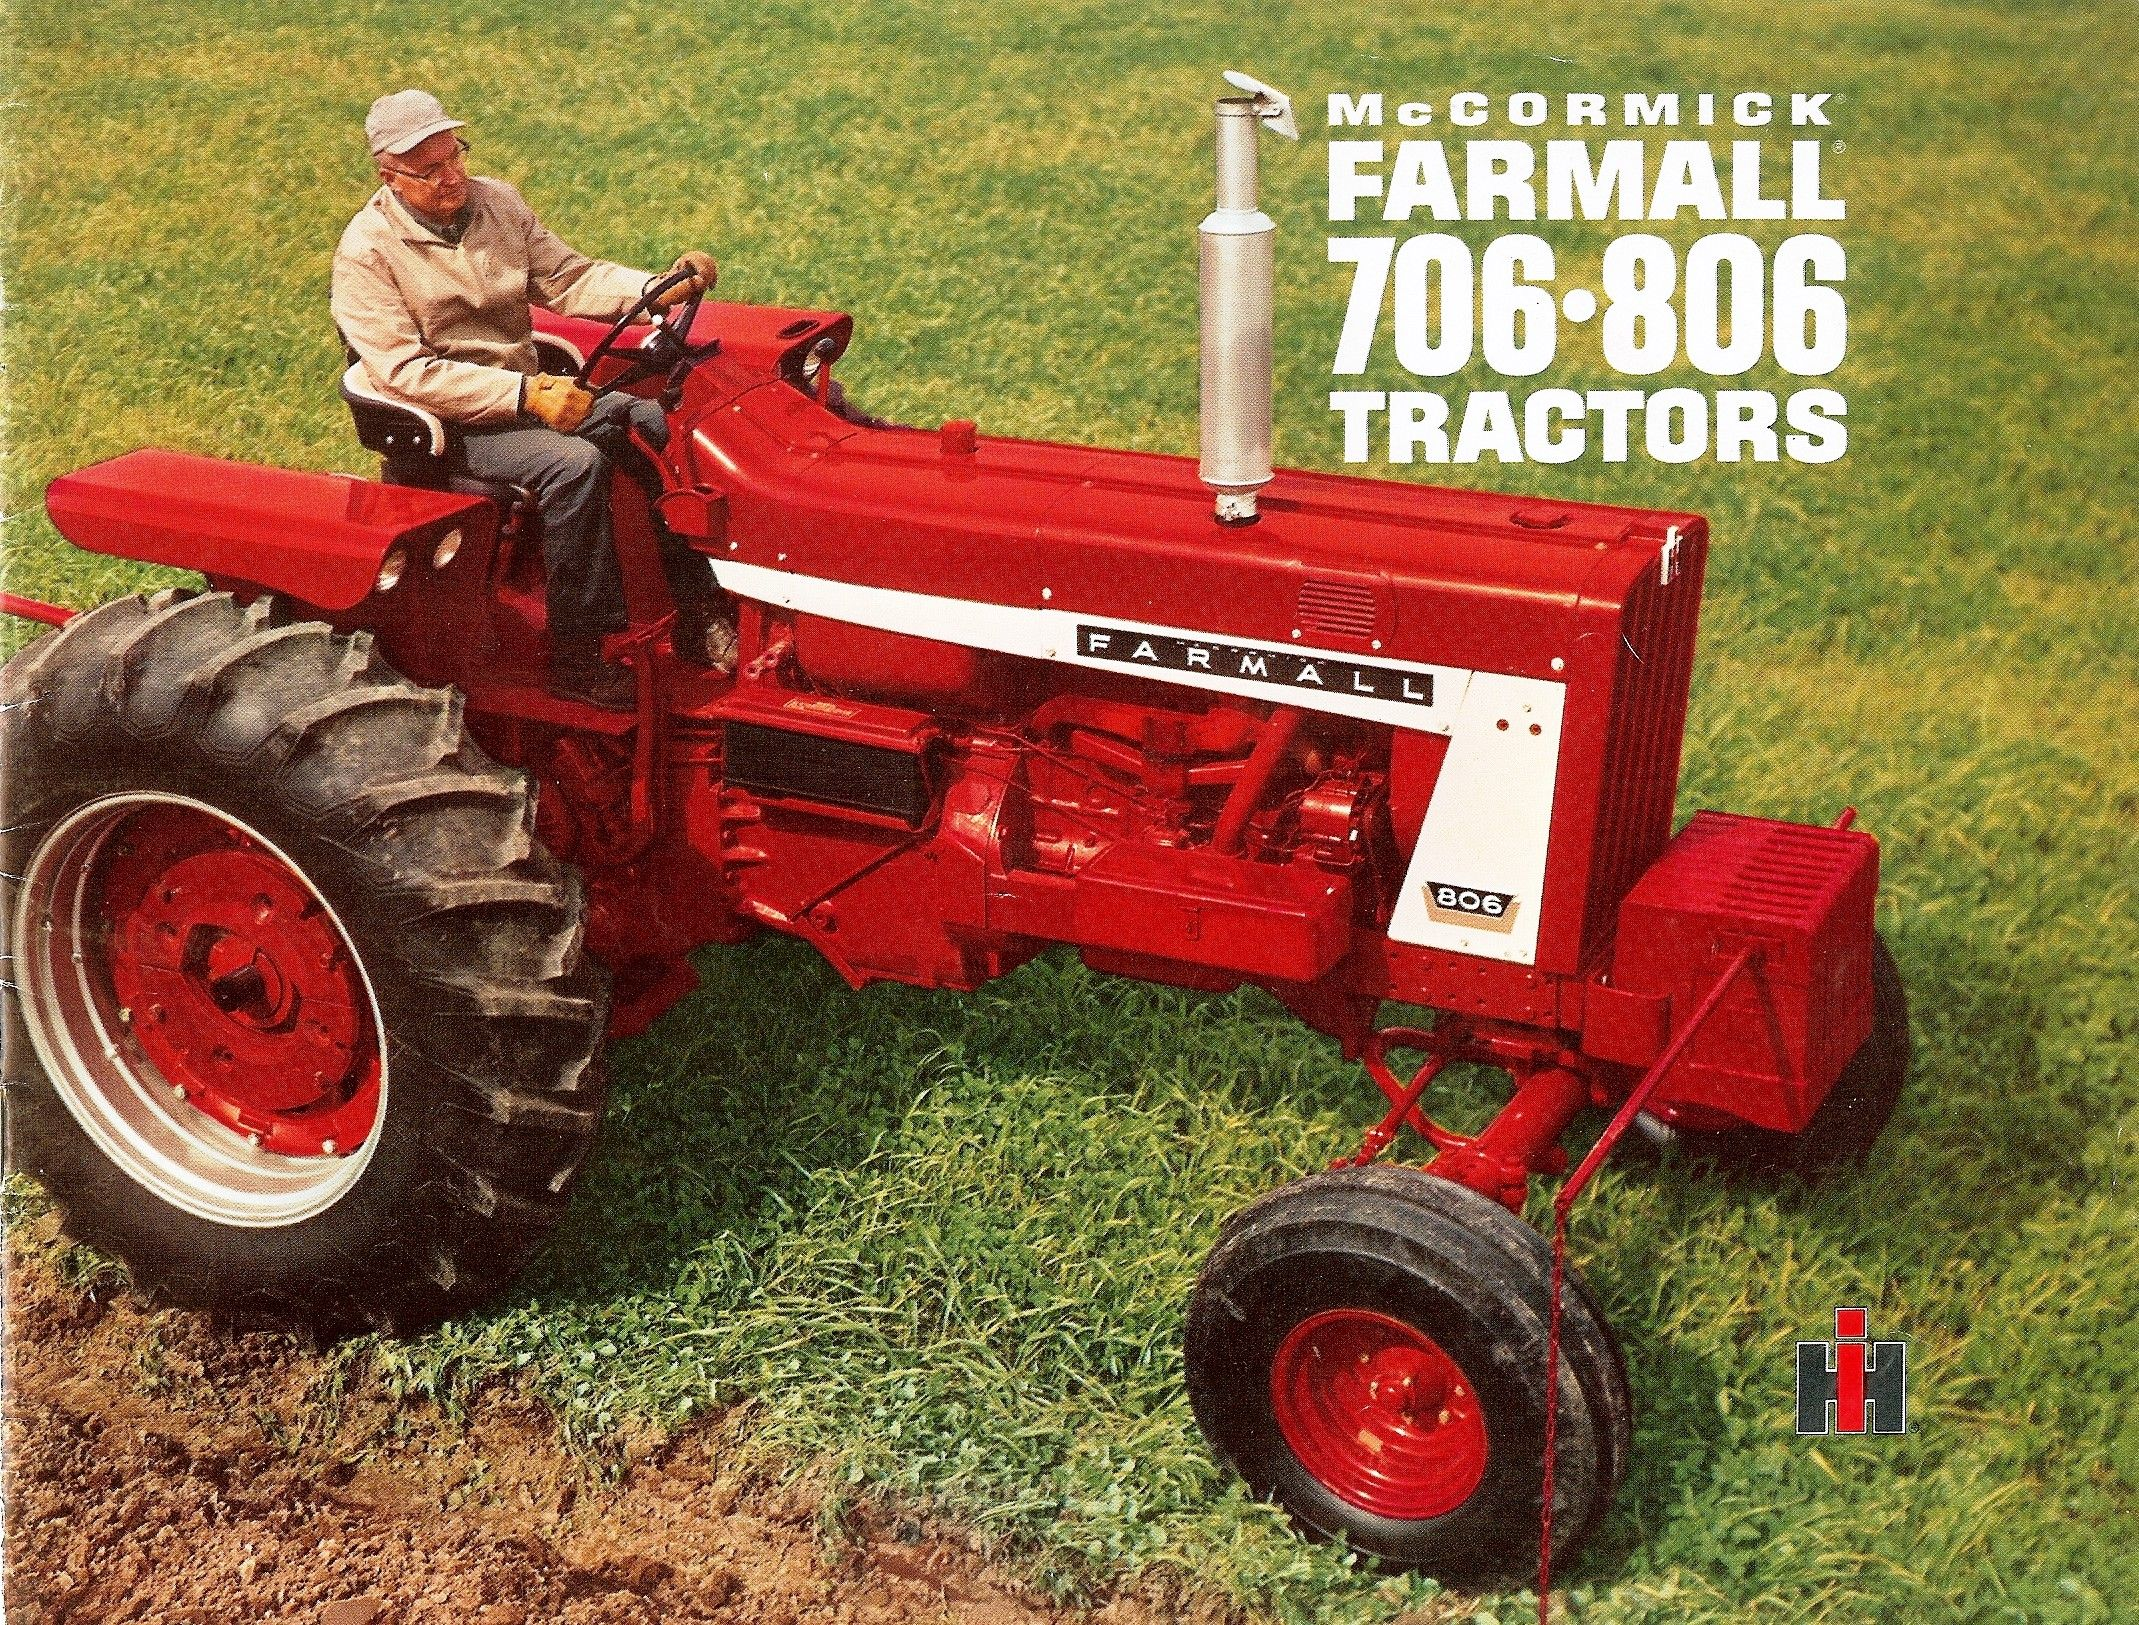 Farmall 706 806 Tractors Tractors Farmall International